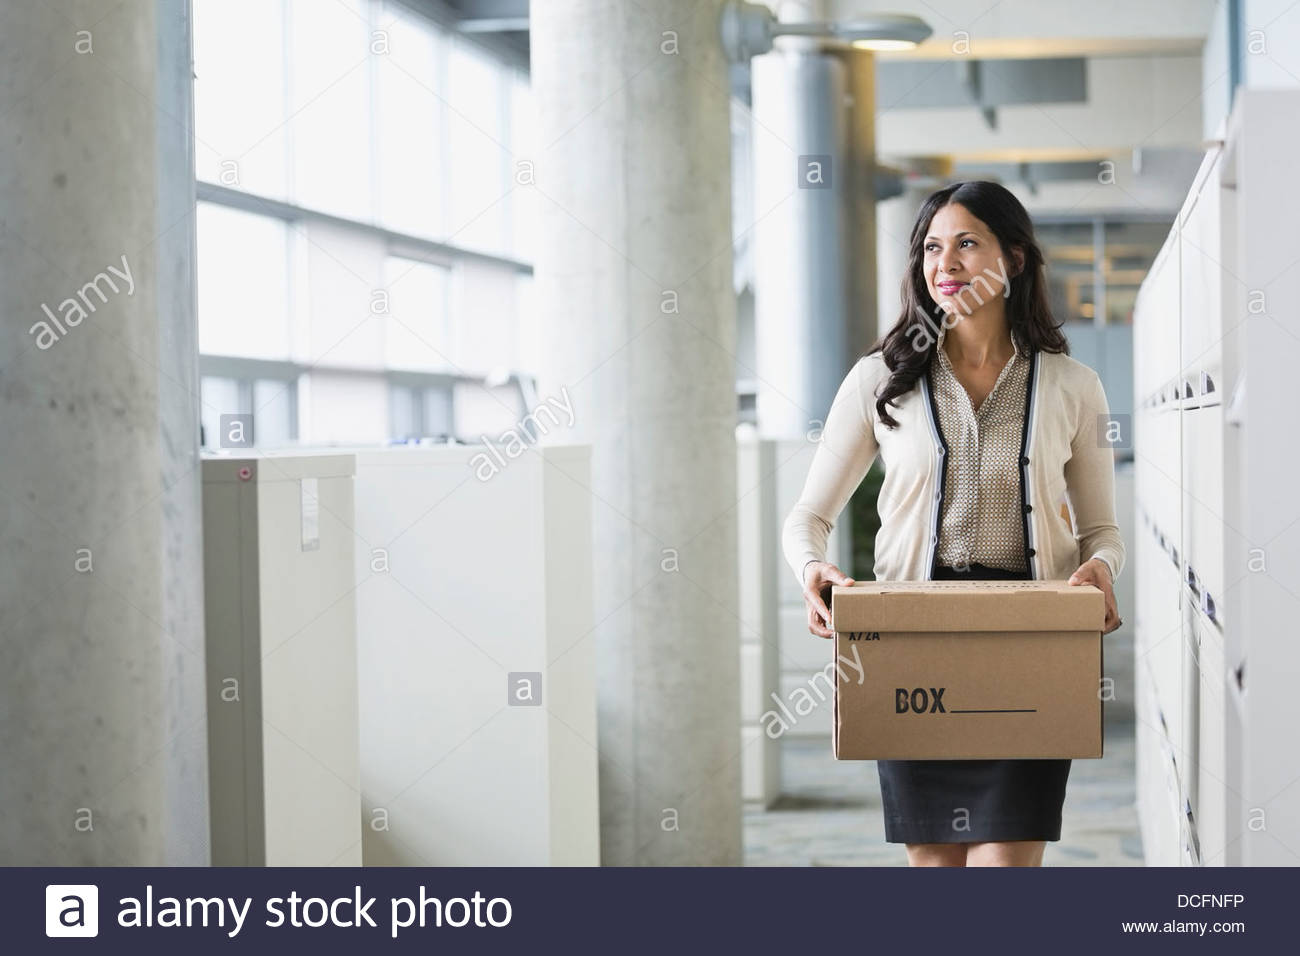 Businesswoman carrying cardboard box - Stock Image